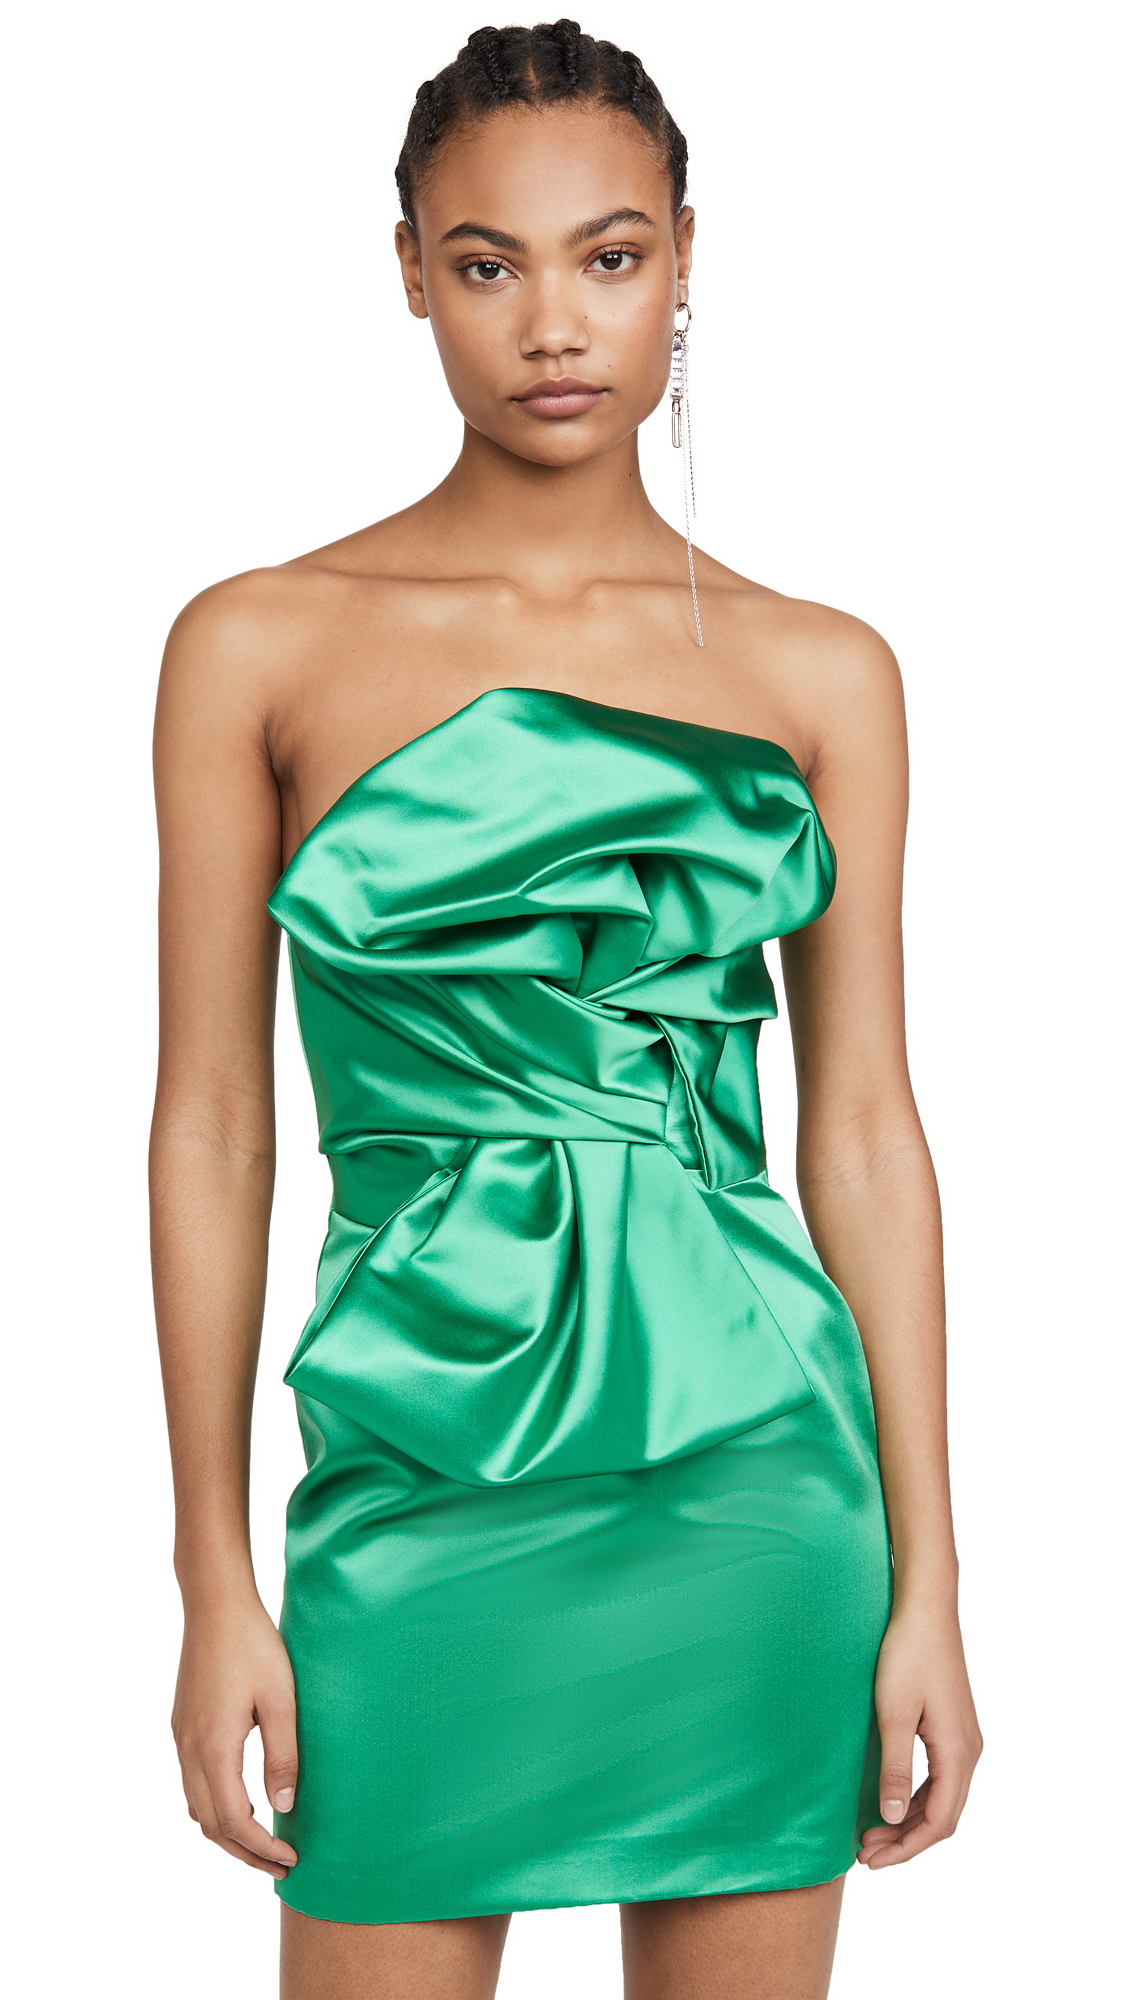 Buy Giuseppe di Morabito Strapless Mini Dress online beautiful Giuseppe di Morabito Clothing, Dresses